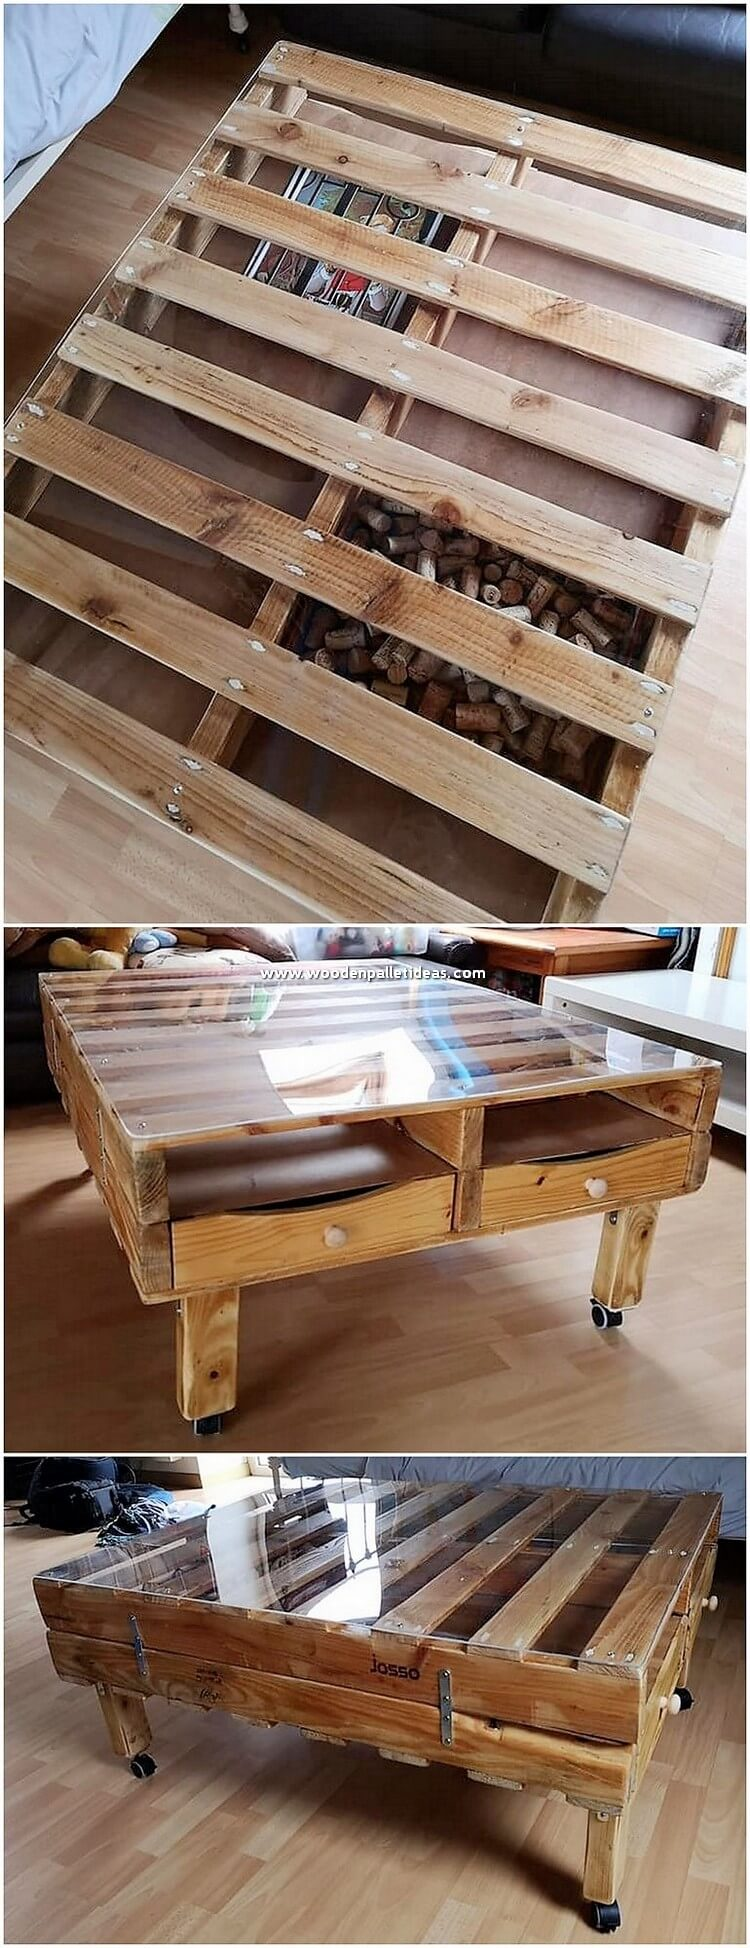 Glass Top Pallet Table with Drawers